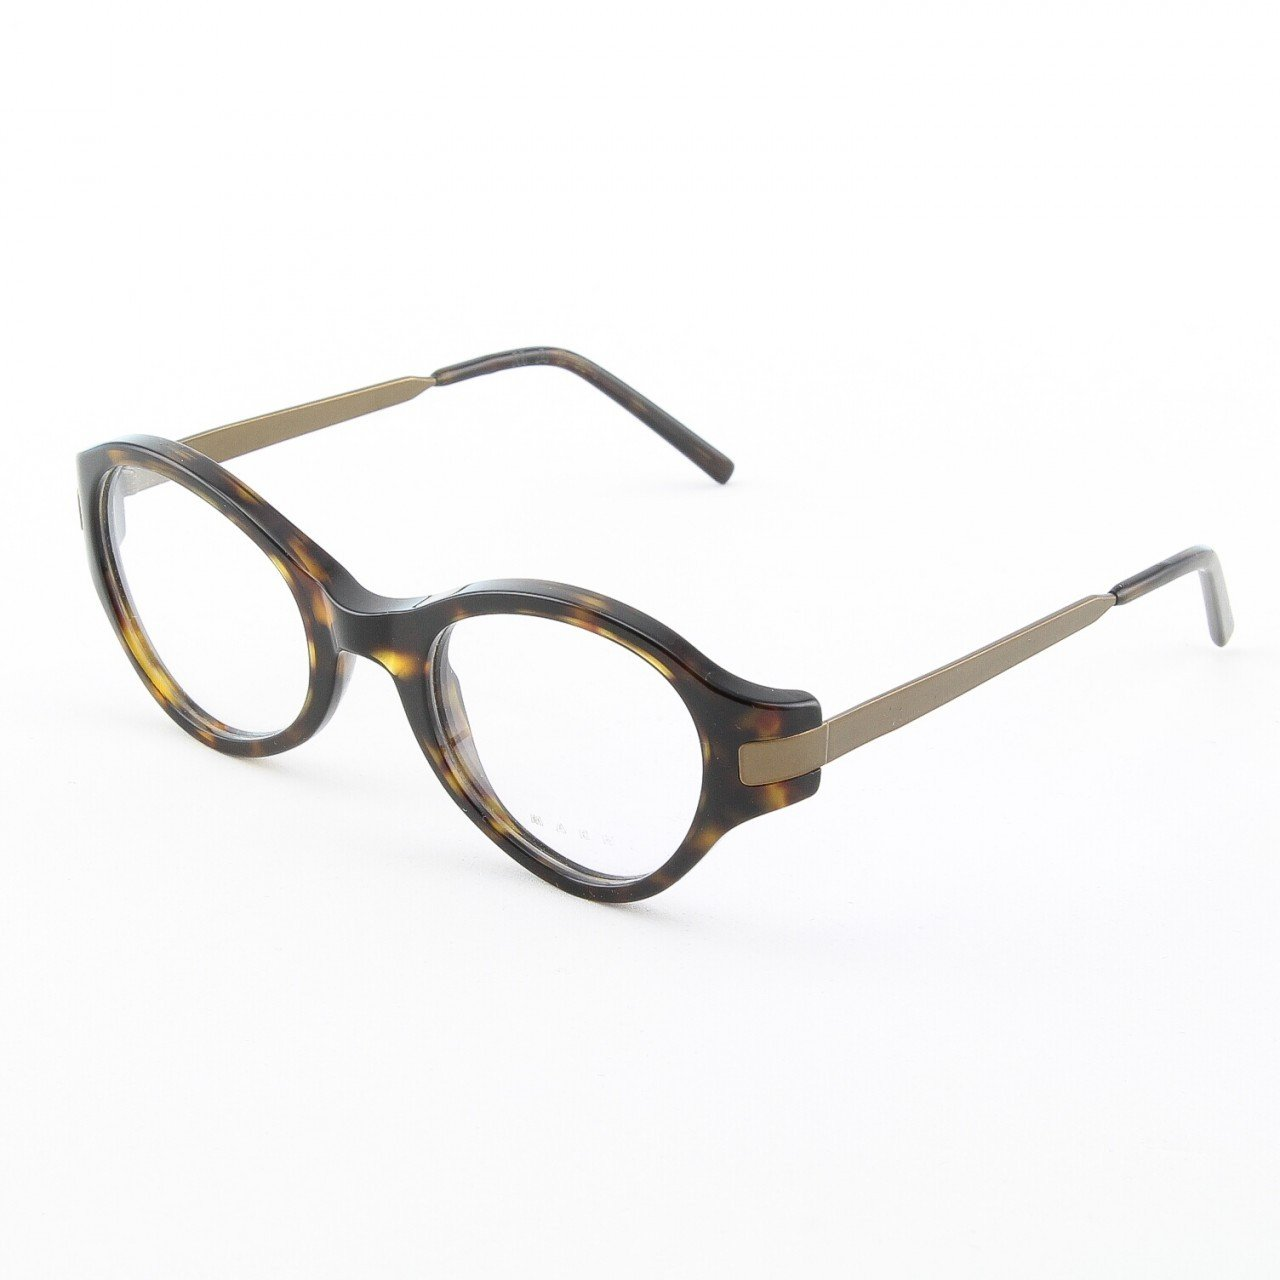 Marni MA679S Eyeglasses Col. 08 Dark Tortoise Frame with Antique Gold Accents and Clear Lenses